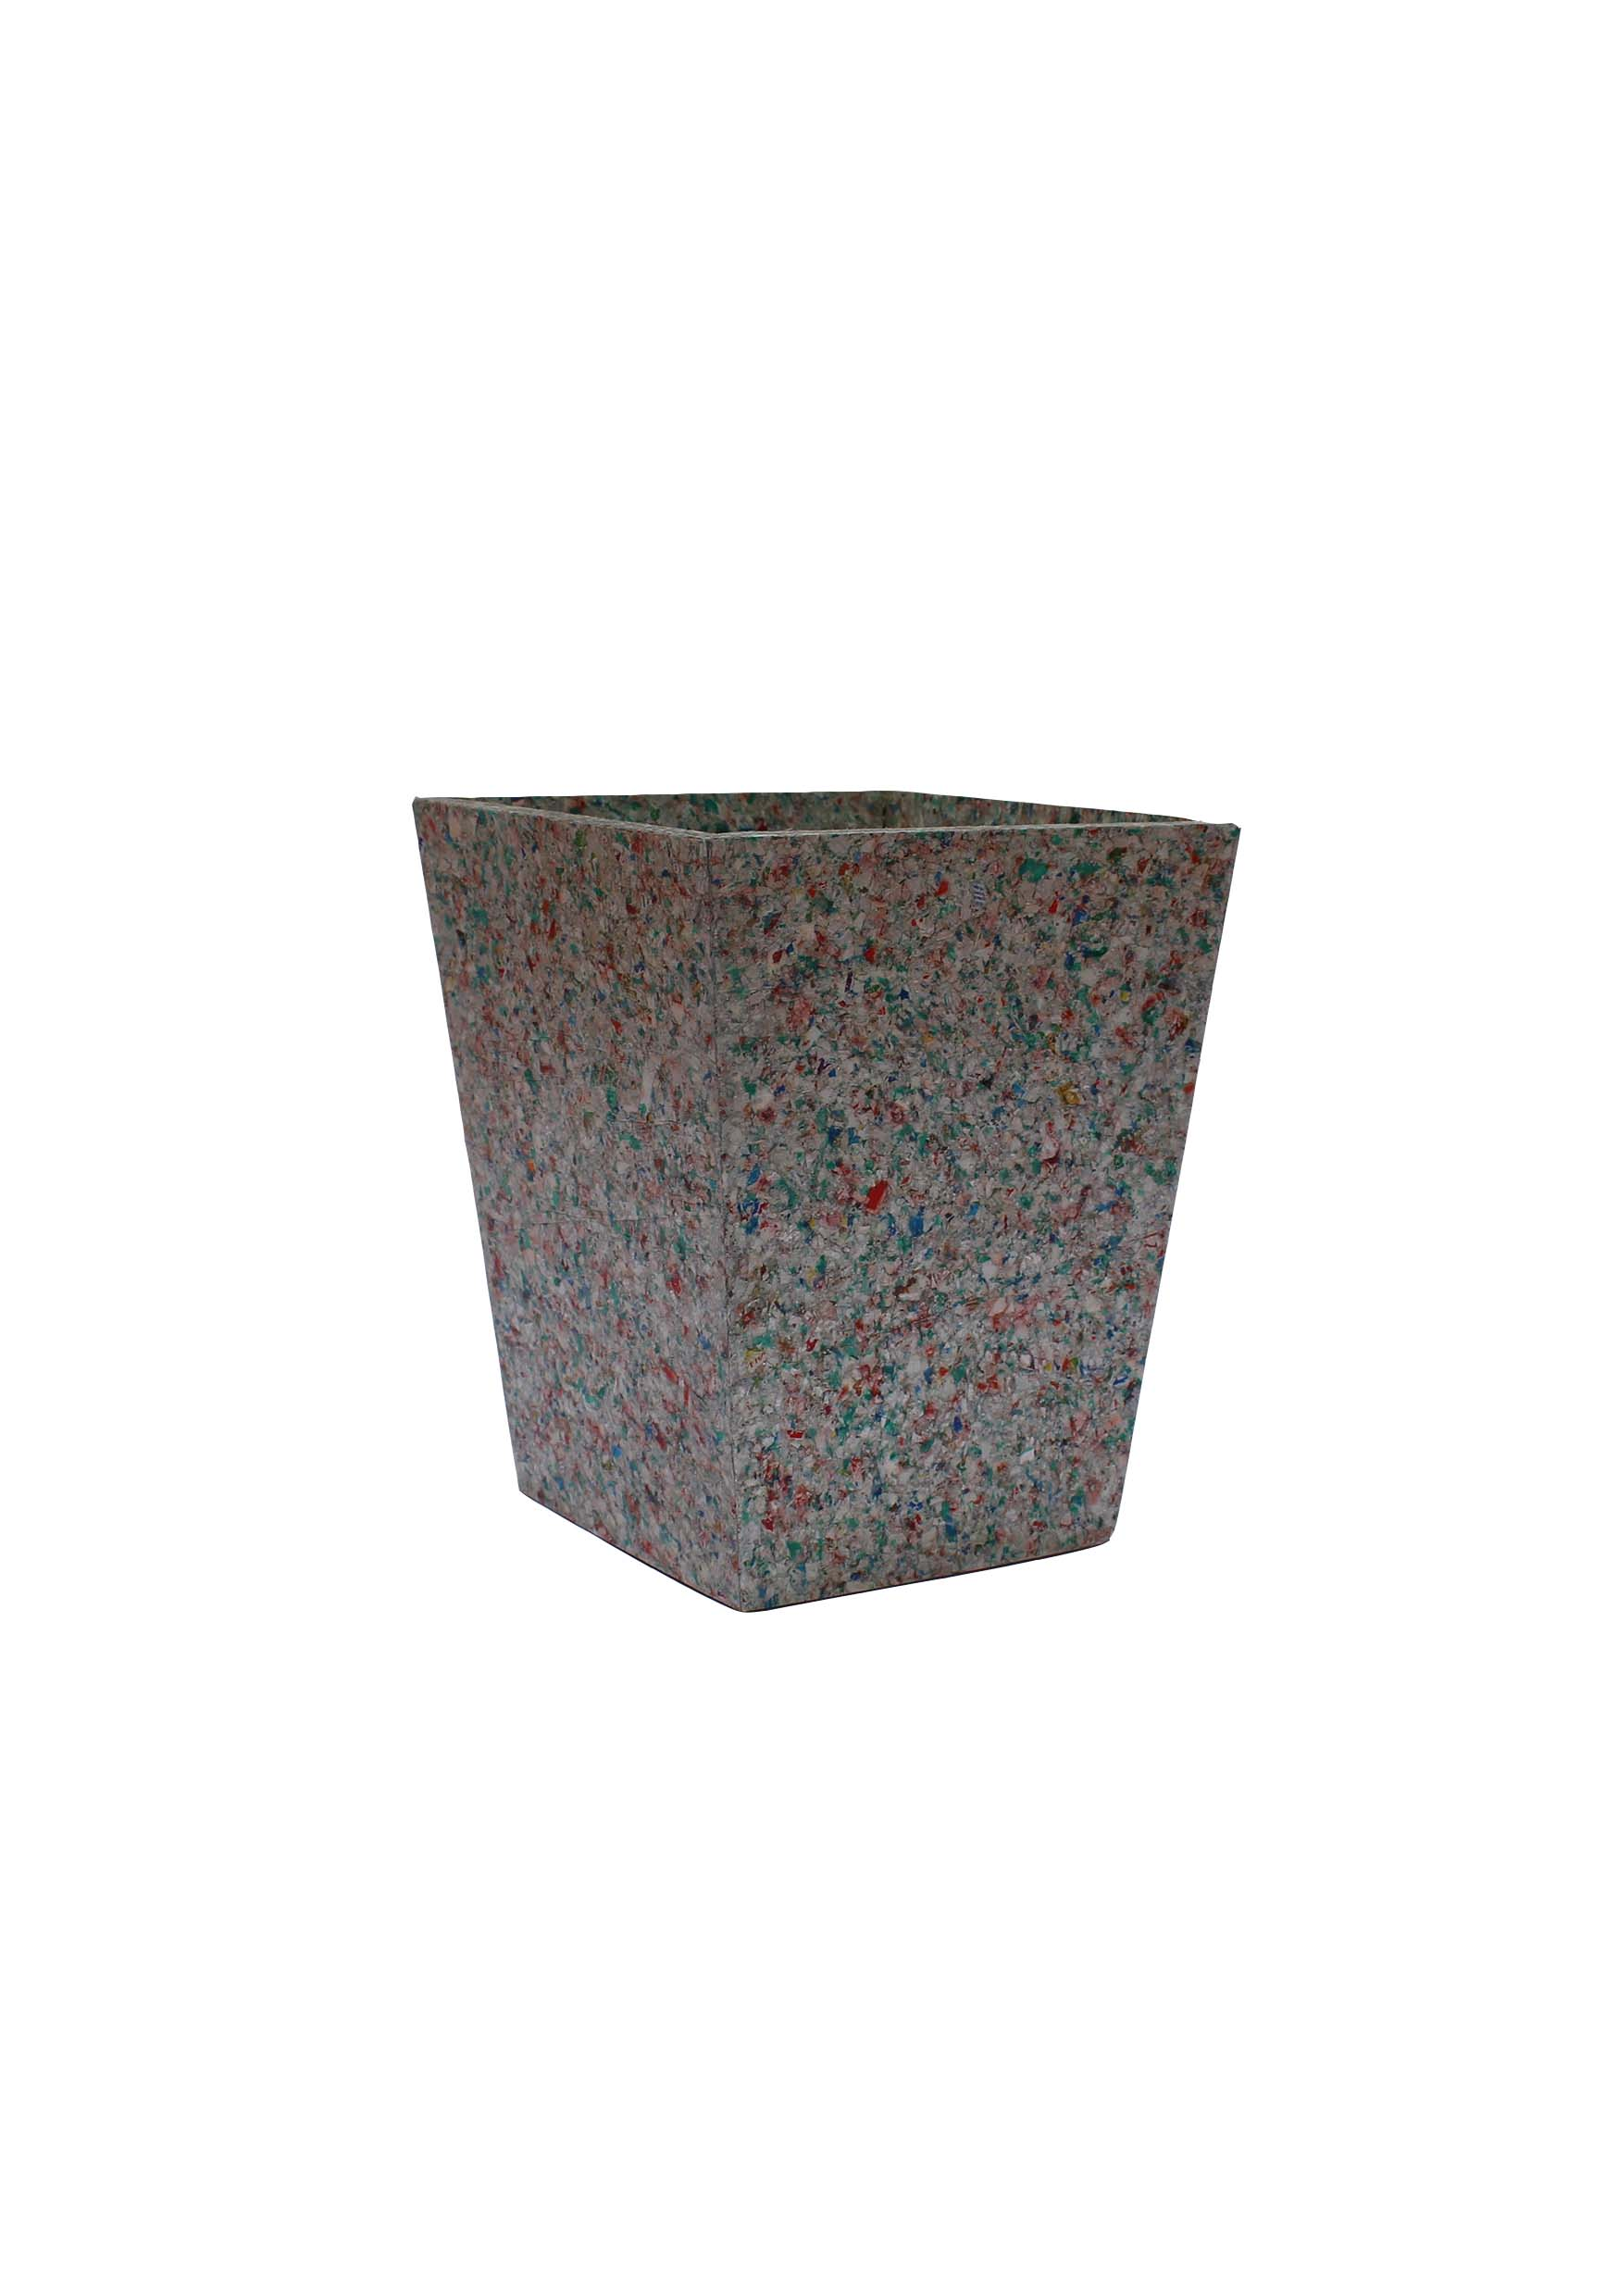 Waste Recycled Products – ECO-BOARD PLANTER